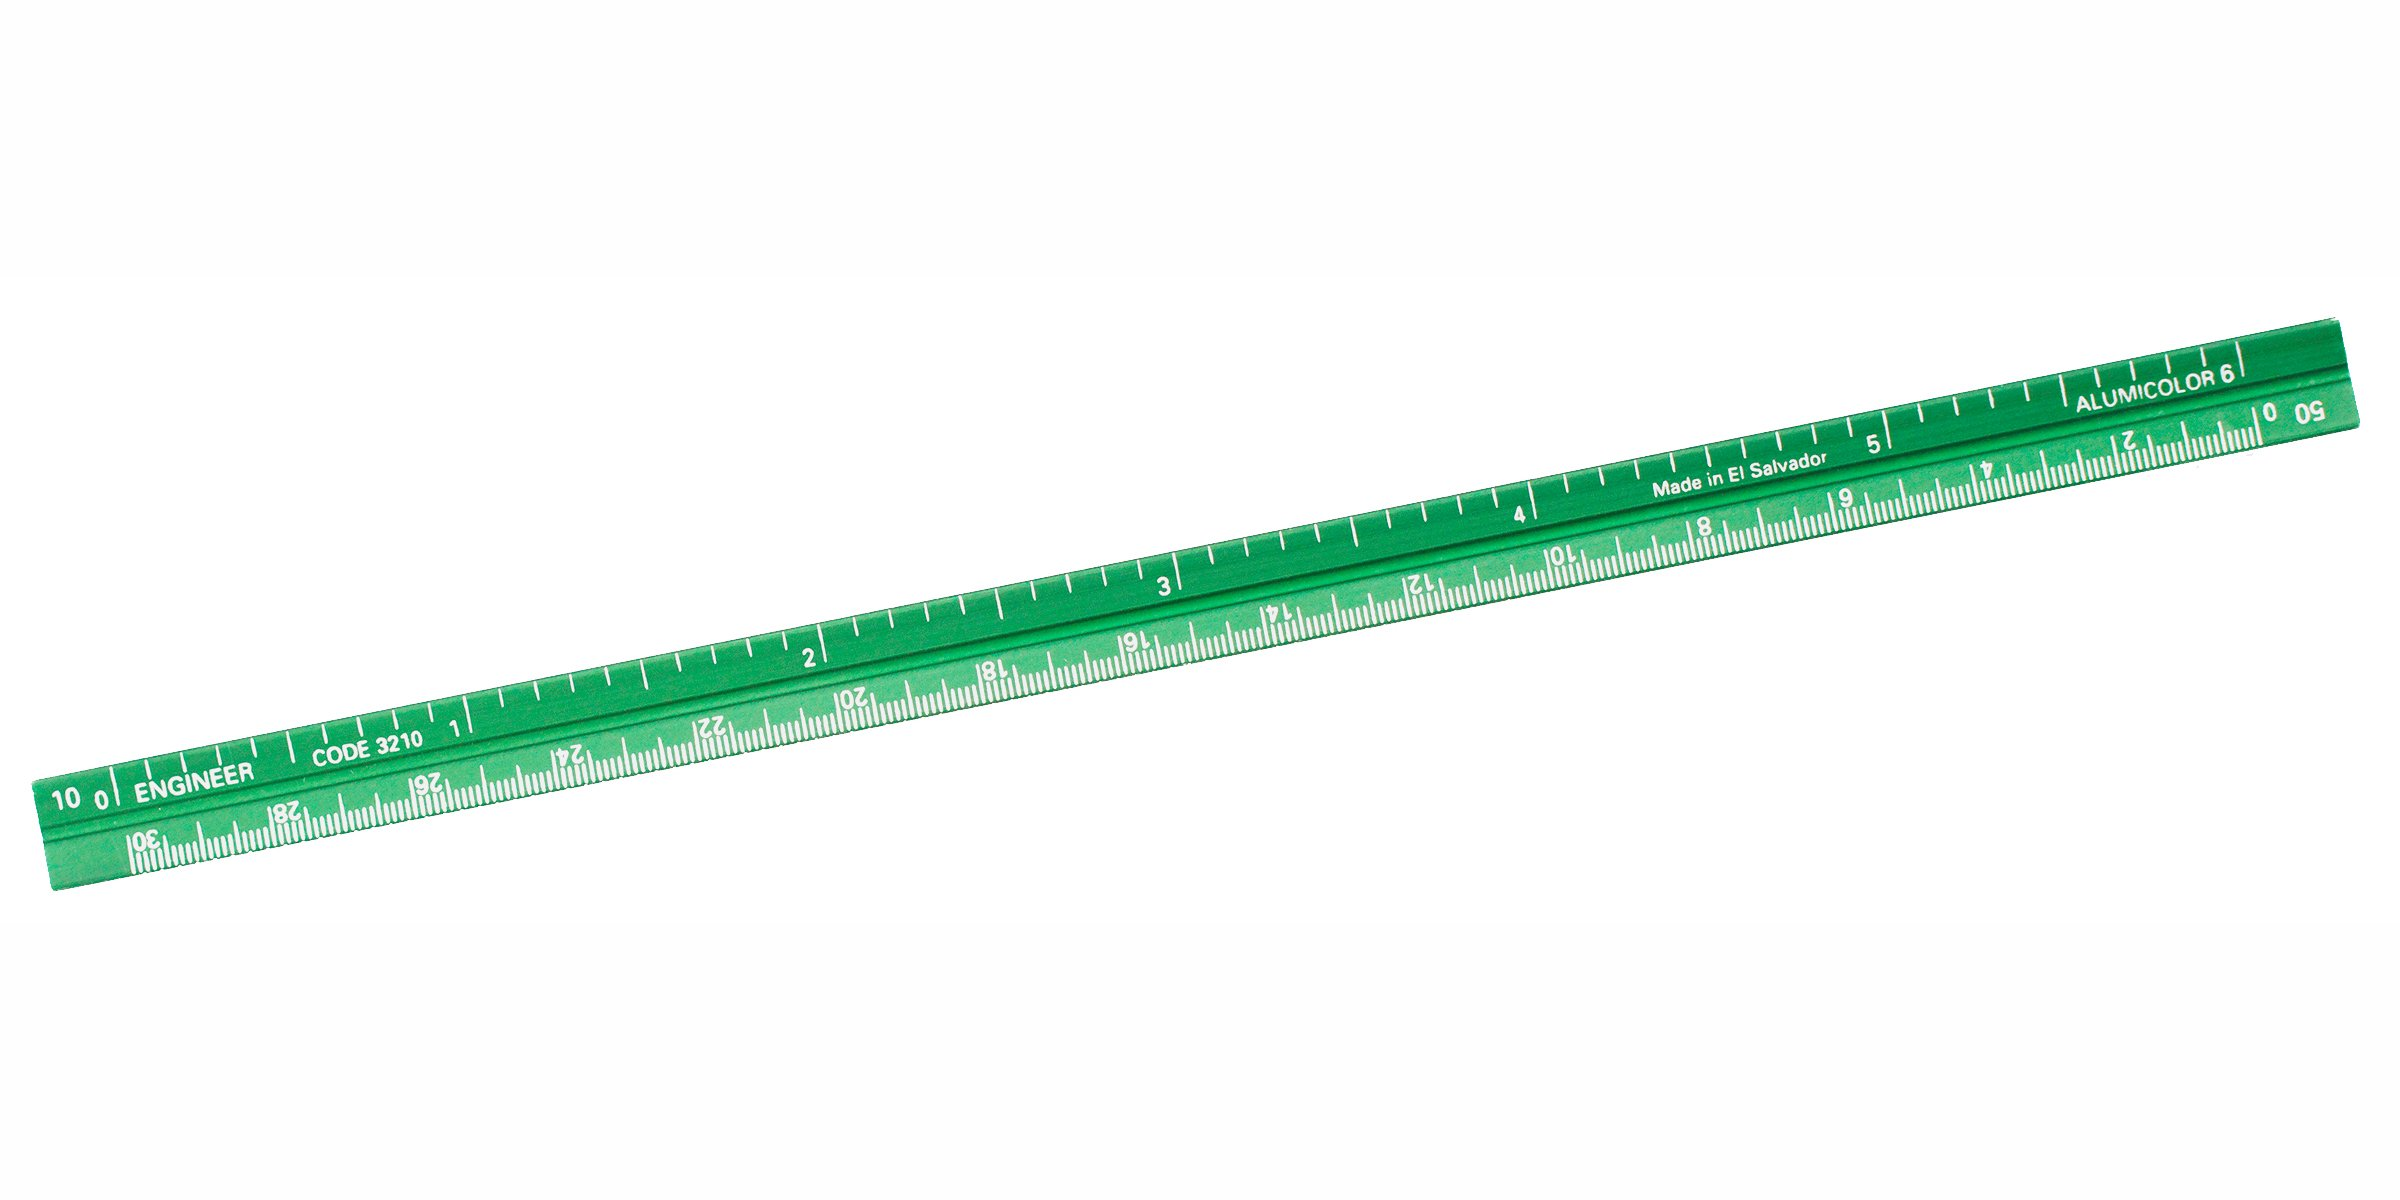 Alumicolor Pocket-Size Engineer Scale, Aluminum, 6 inches, Green (3210-6) by Alumicolor